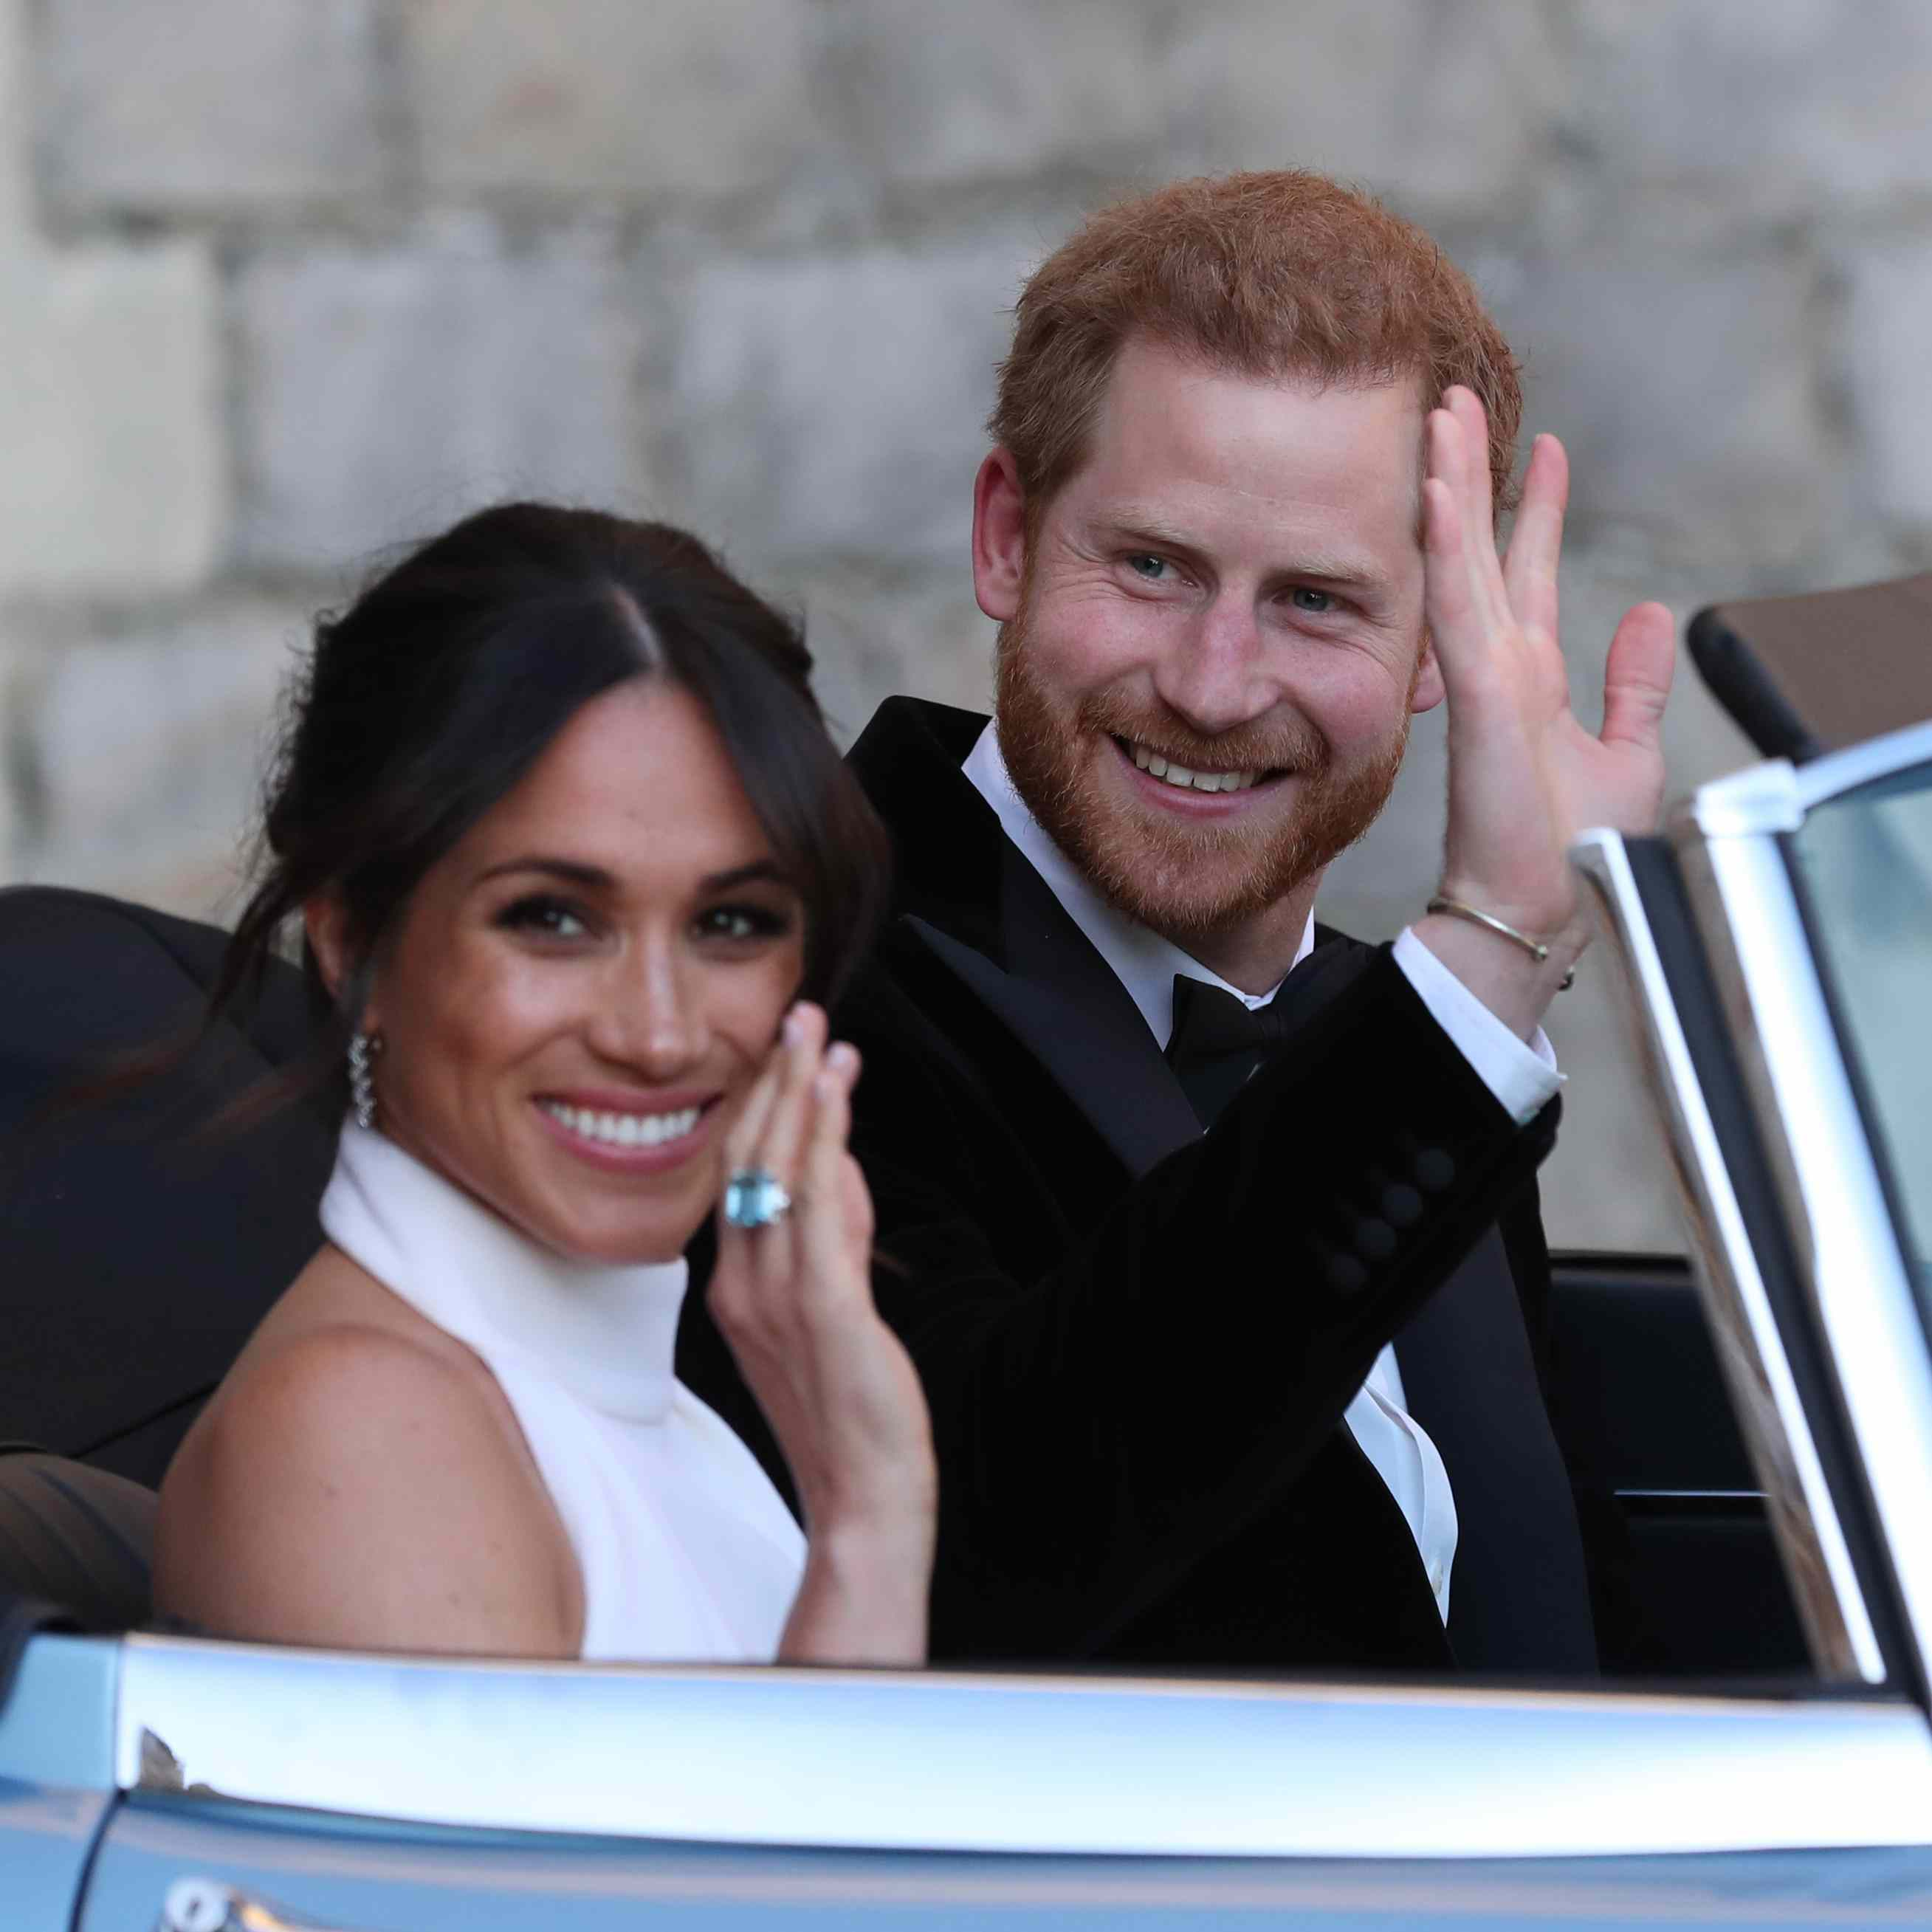 Prince Harry Wedding Reception.You Can Soon Visit Meghan Markle And Prince Harry S Wedding